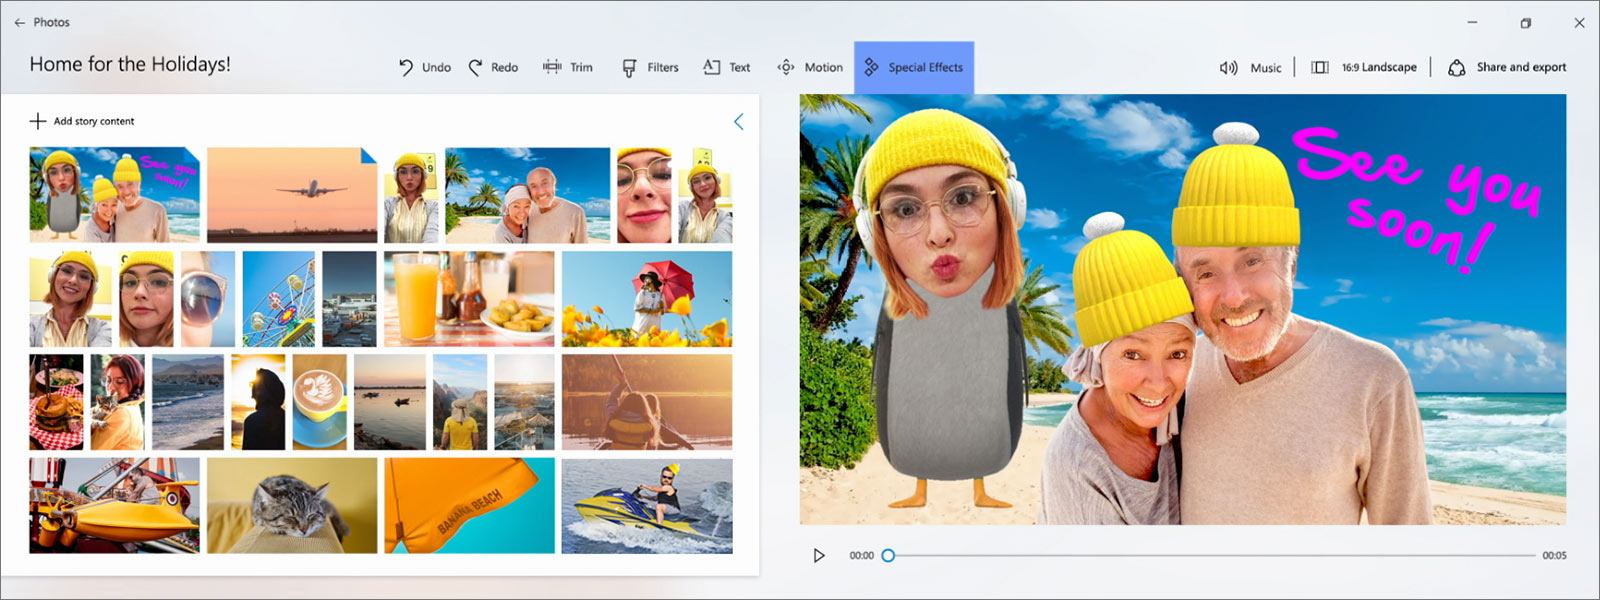 Windows 10 Fotos-App